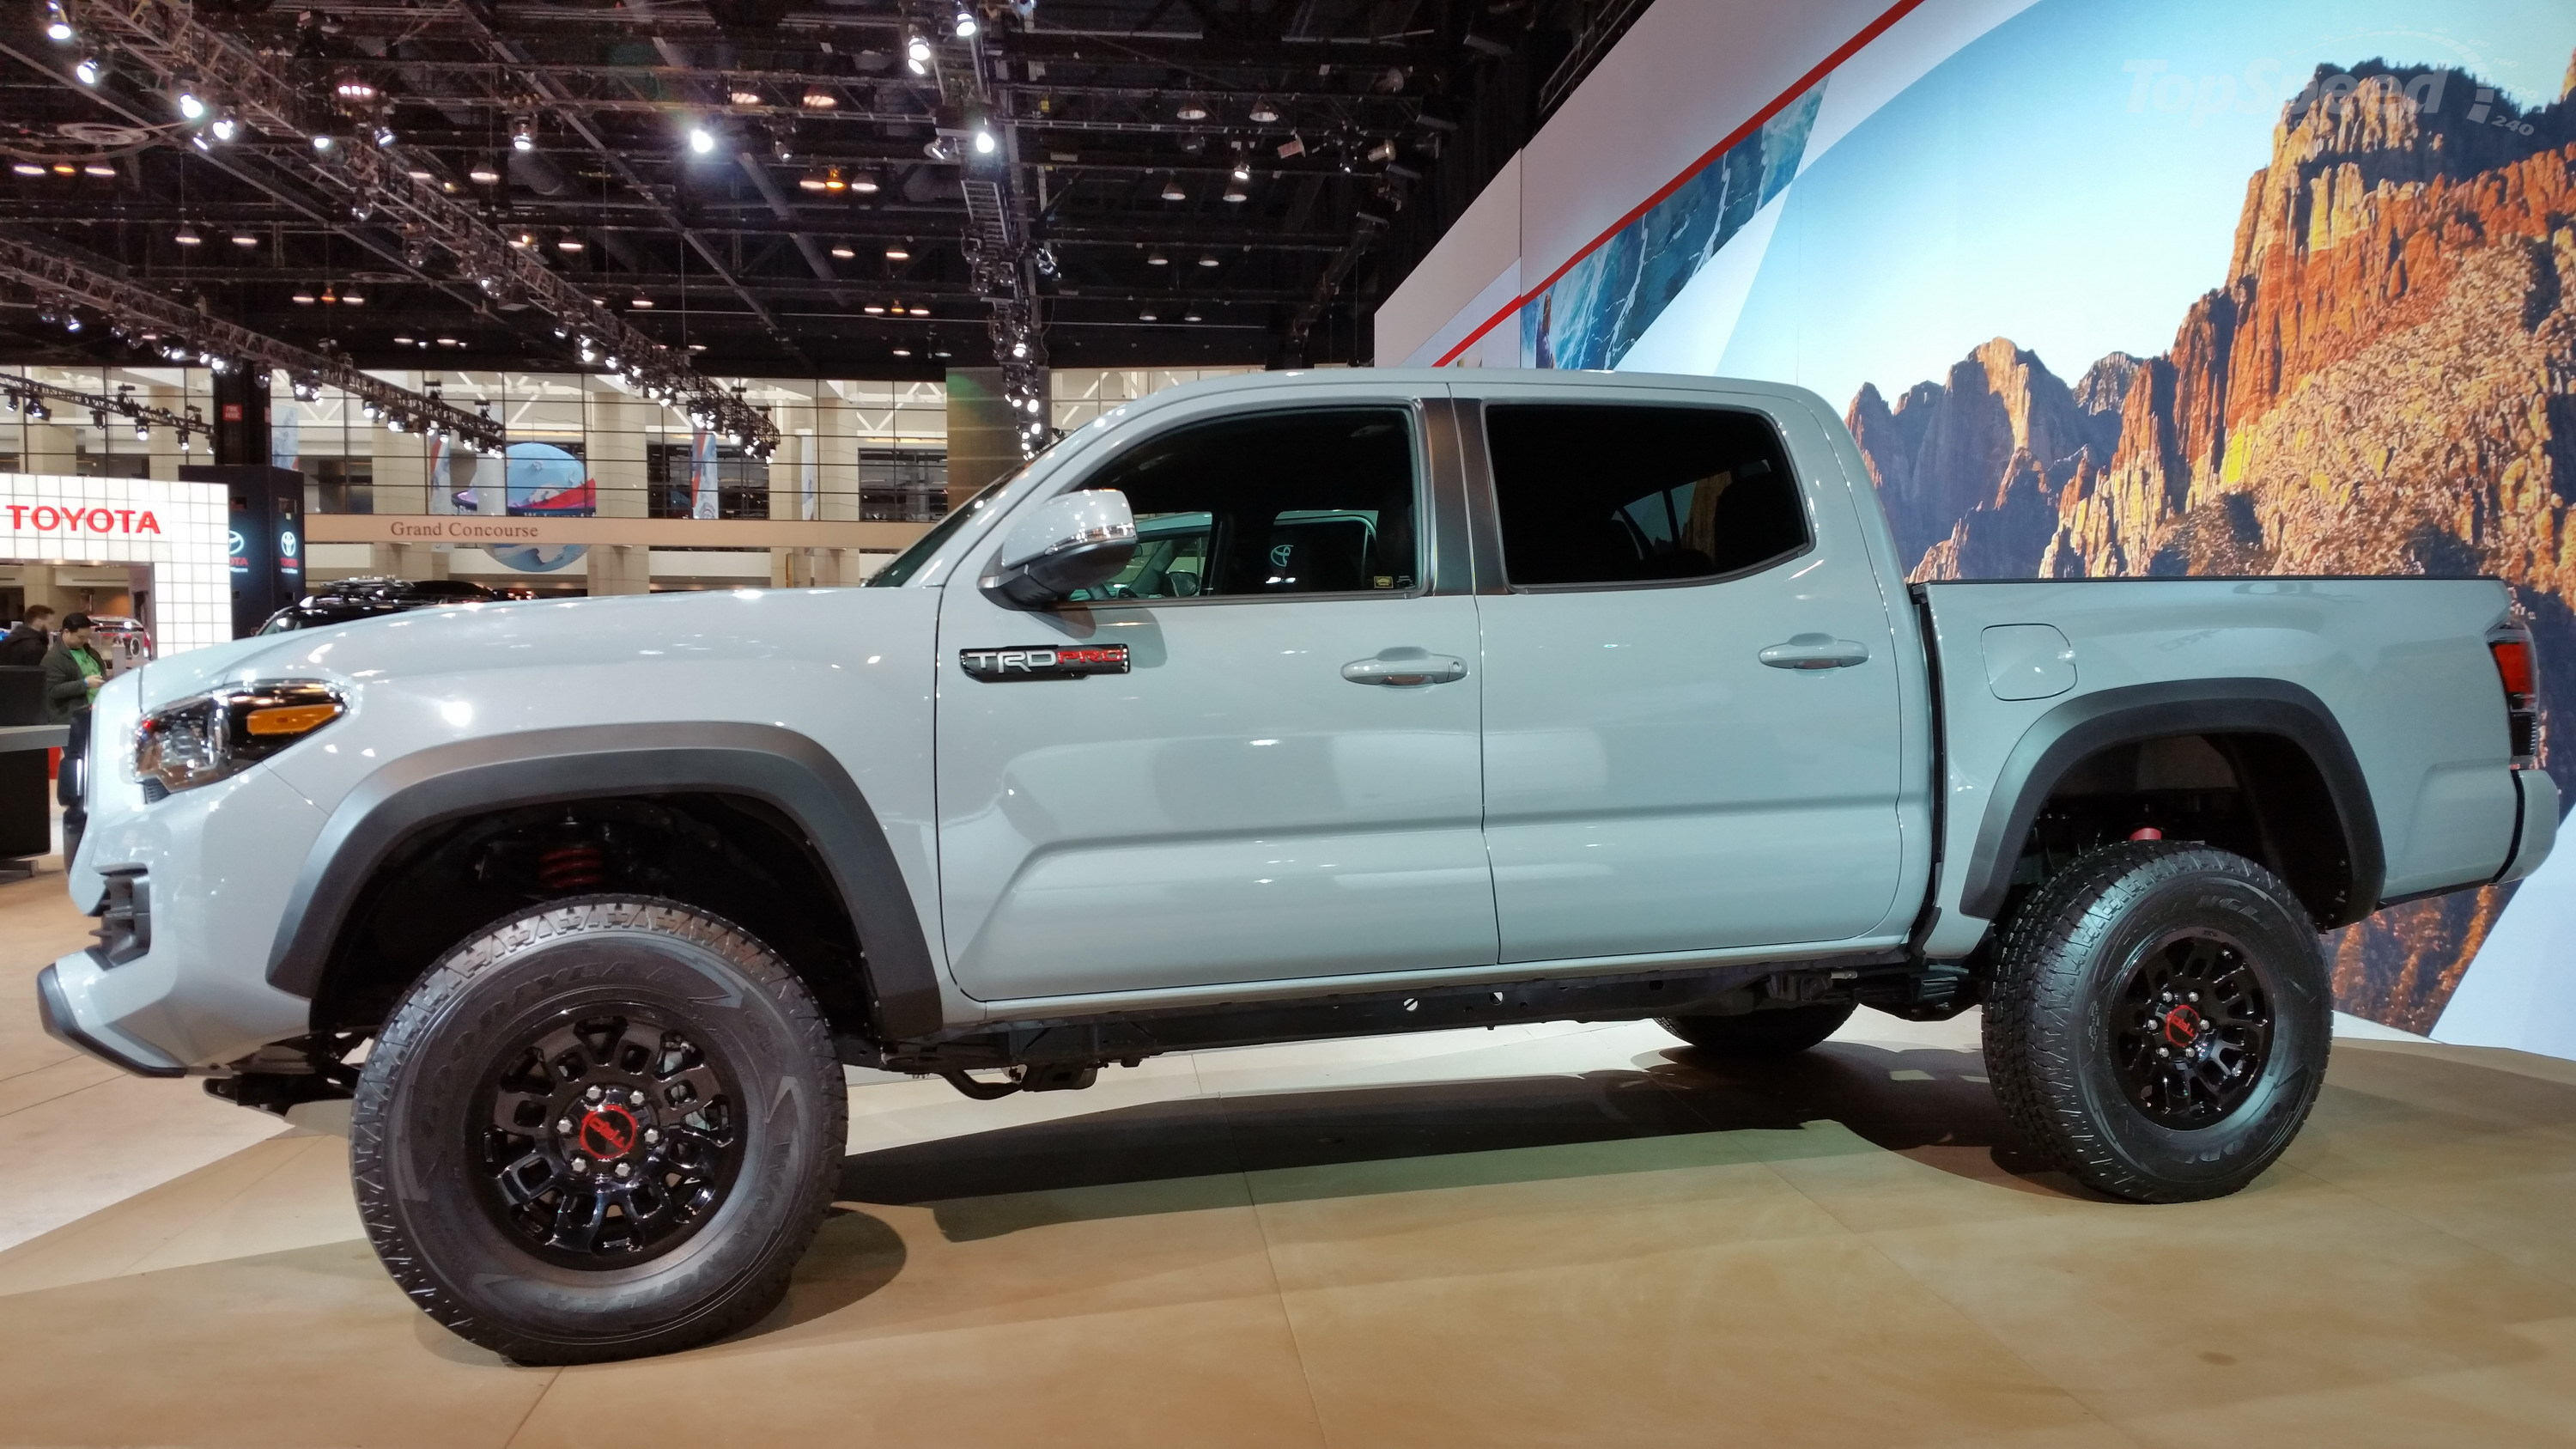 2017 toyota tacoma trd pro picture 666060 truck review top speed. Black Bedroom Furniture Sets. Home Design Ideas